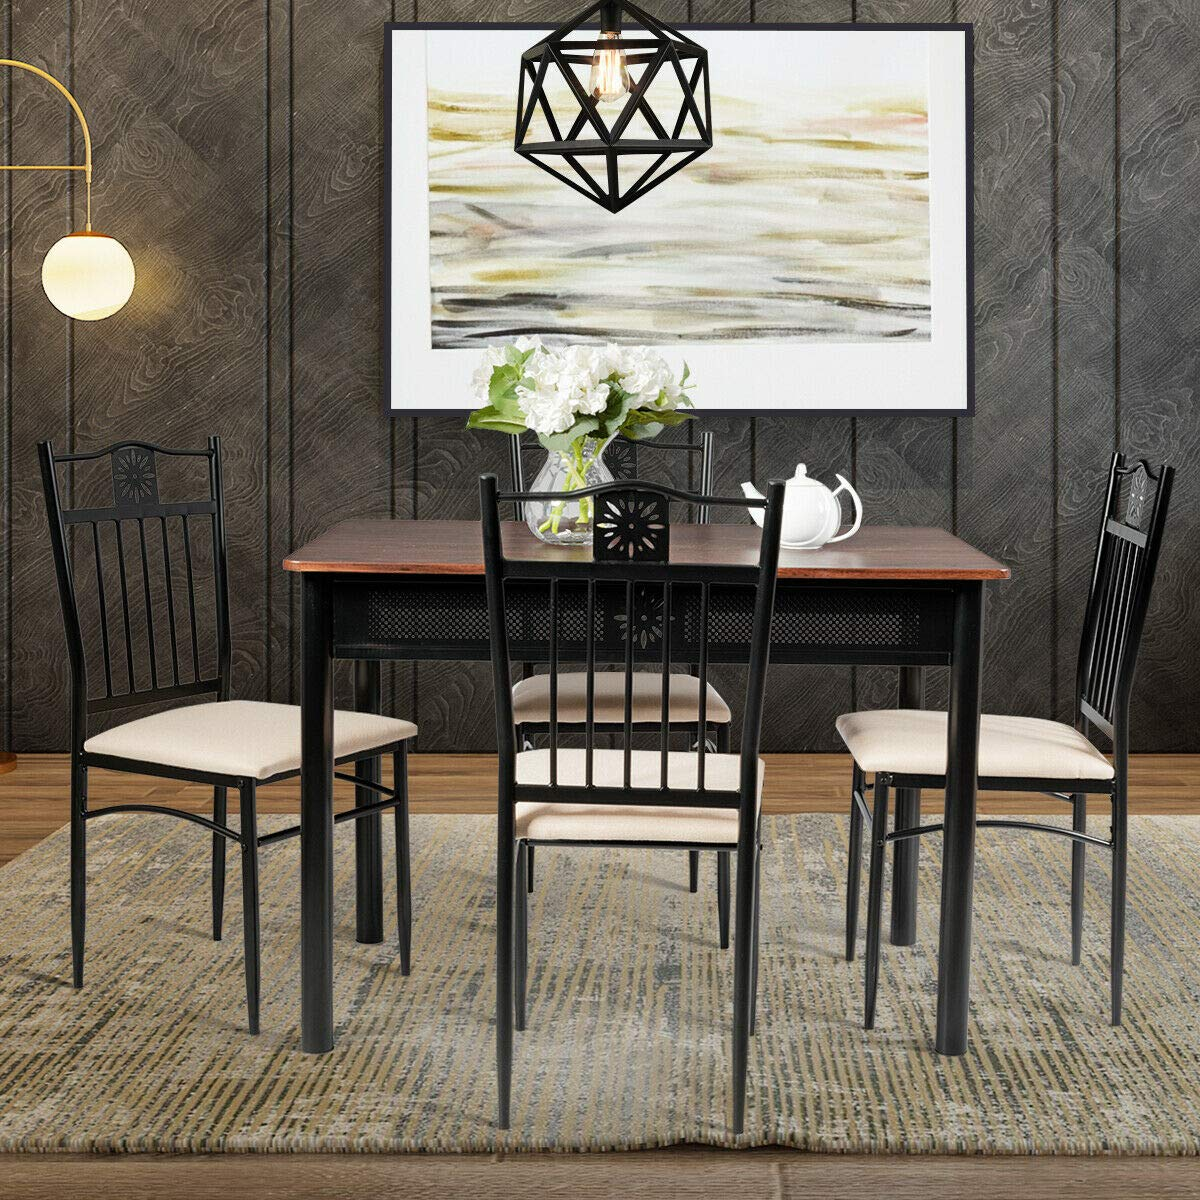 Stark Item 5 Piece Dining Set Wood Metal Table and 4 Chairs Kitchen Breakfast Furniture